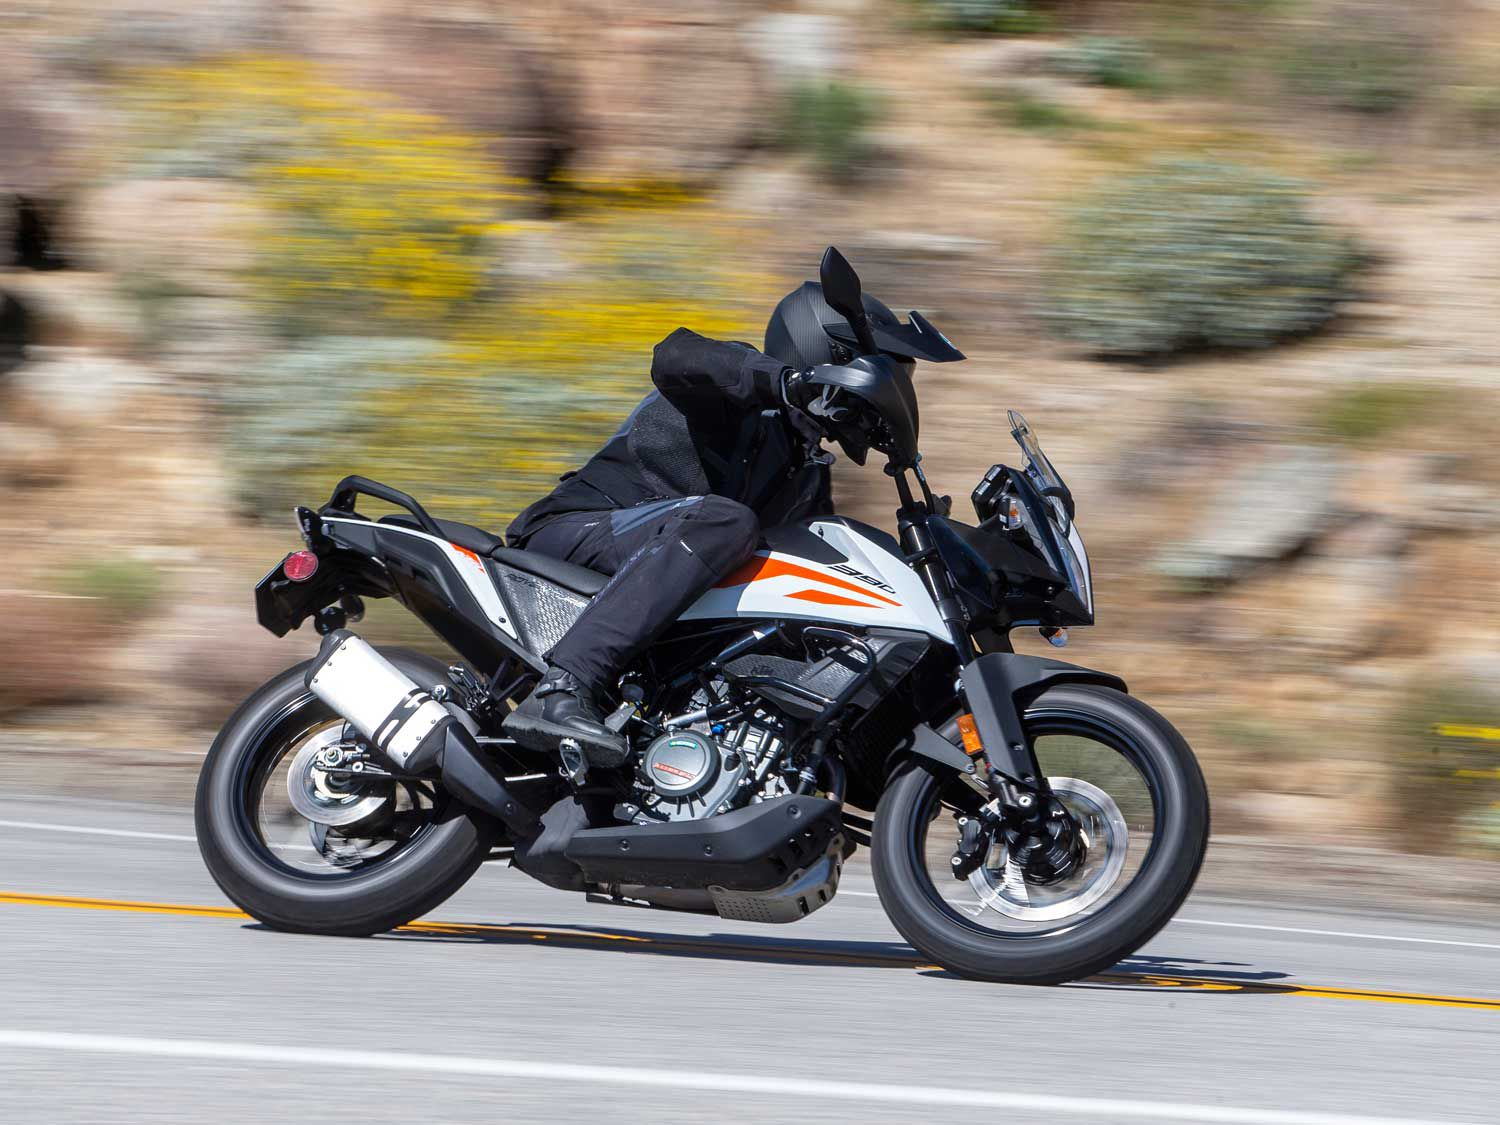 <em>Motorcyclist</em> launches a new podcast. For our first episode, we discuss KTM's fun and affordable 390 Adventure.